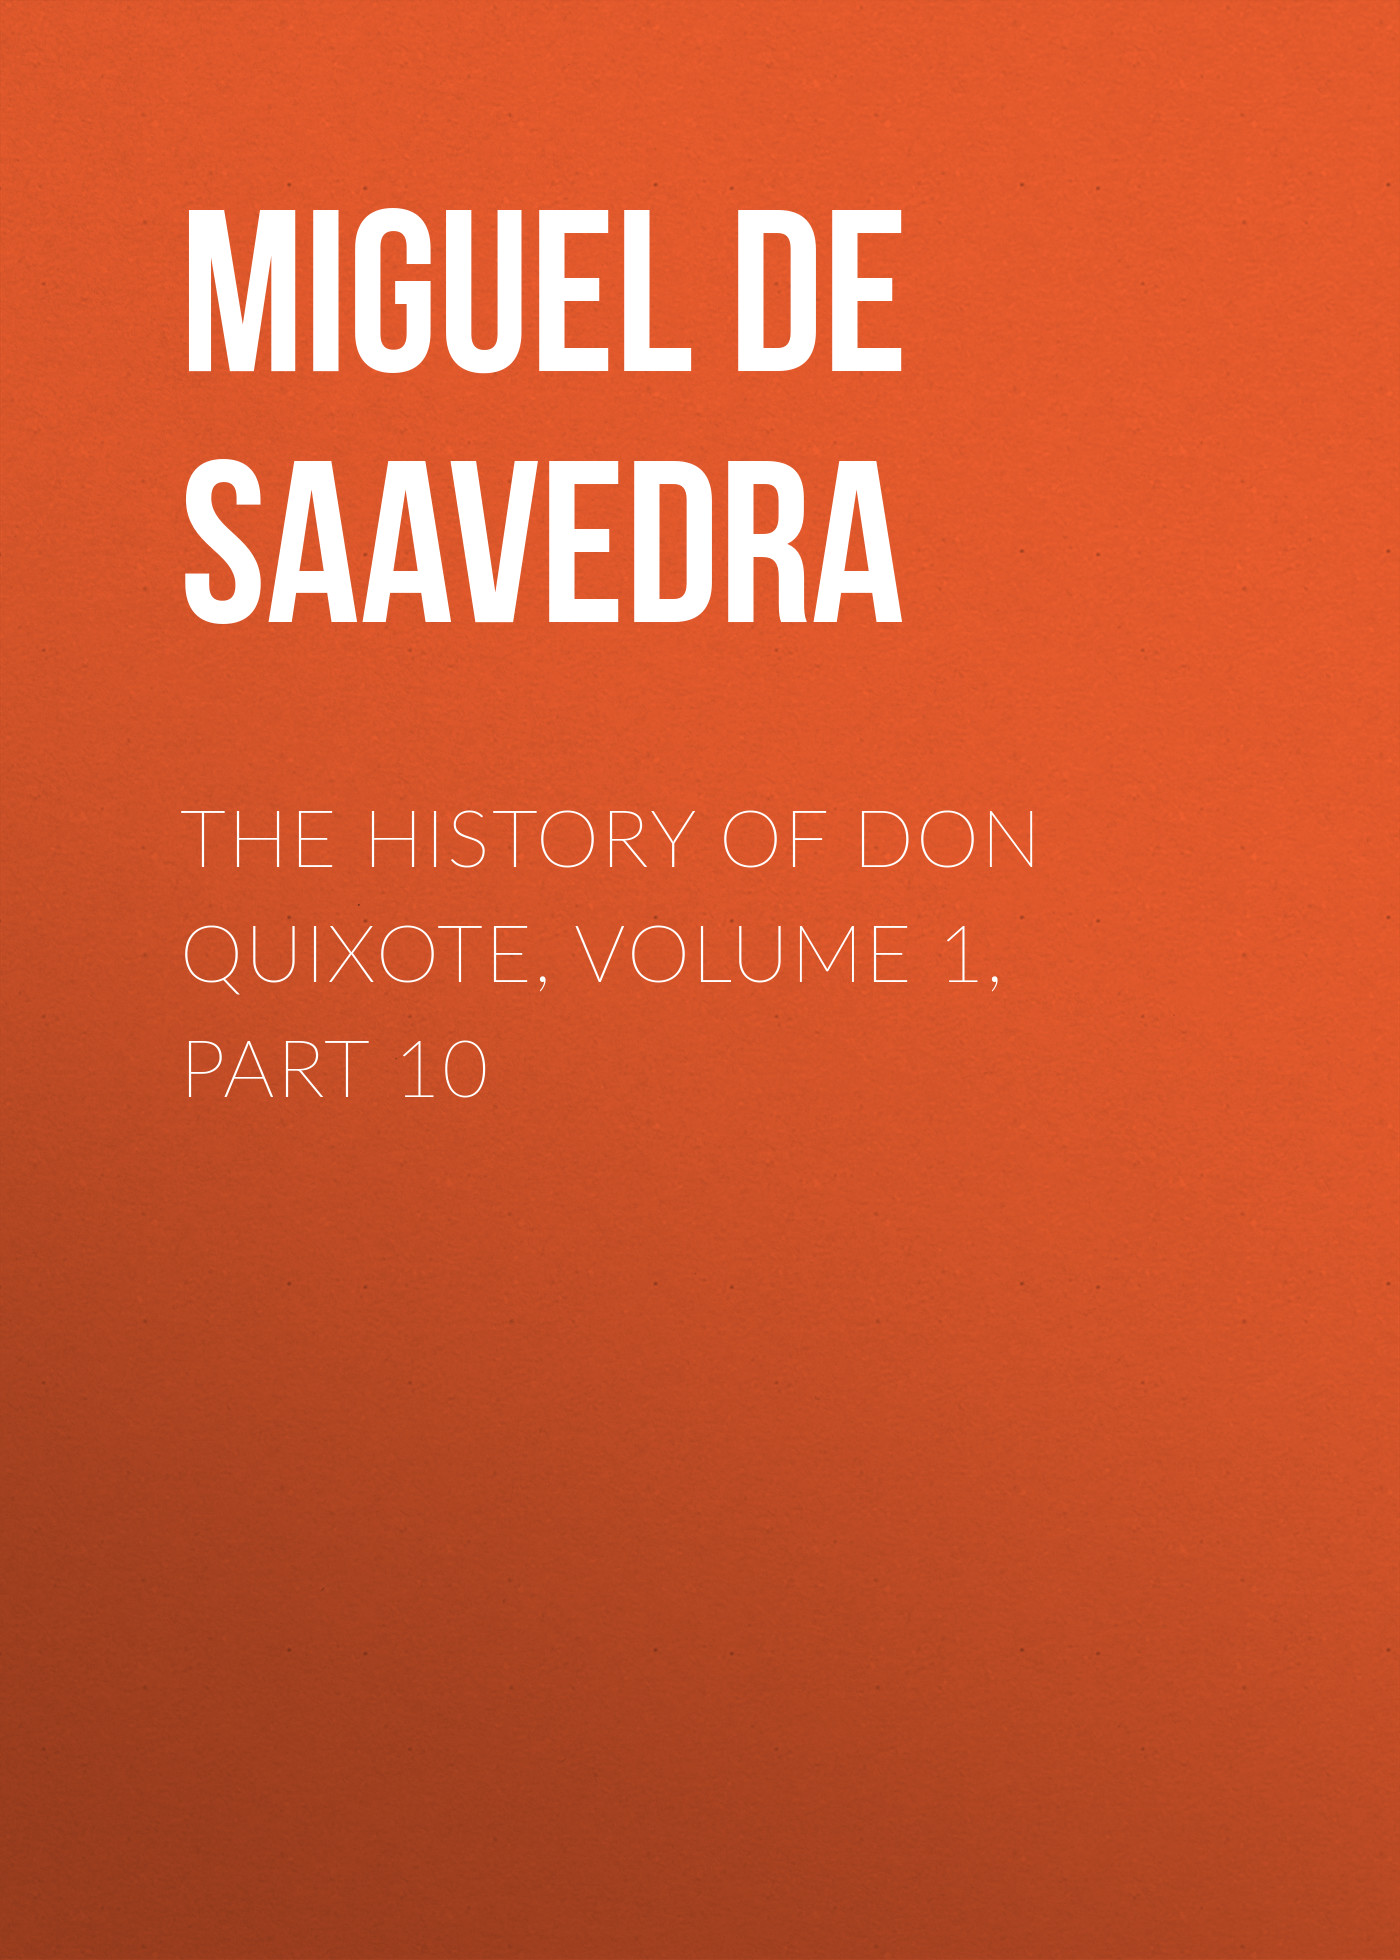 the history of don quixote volume 1 part 10